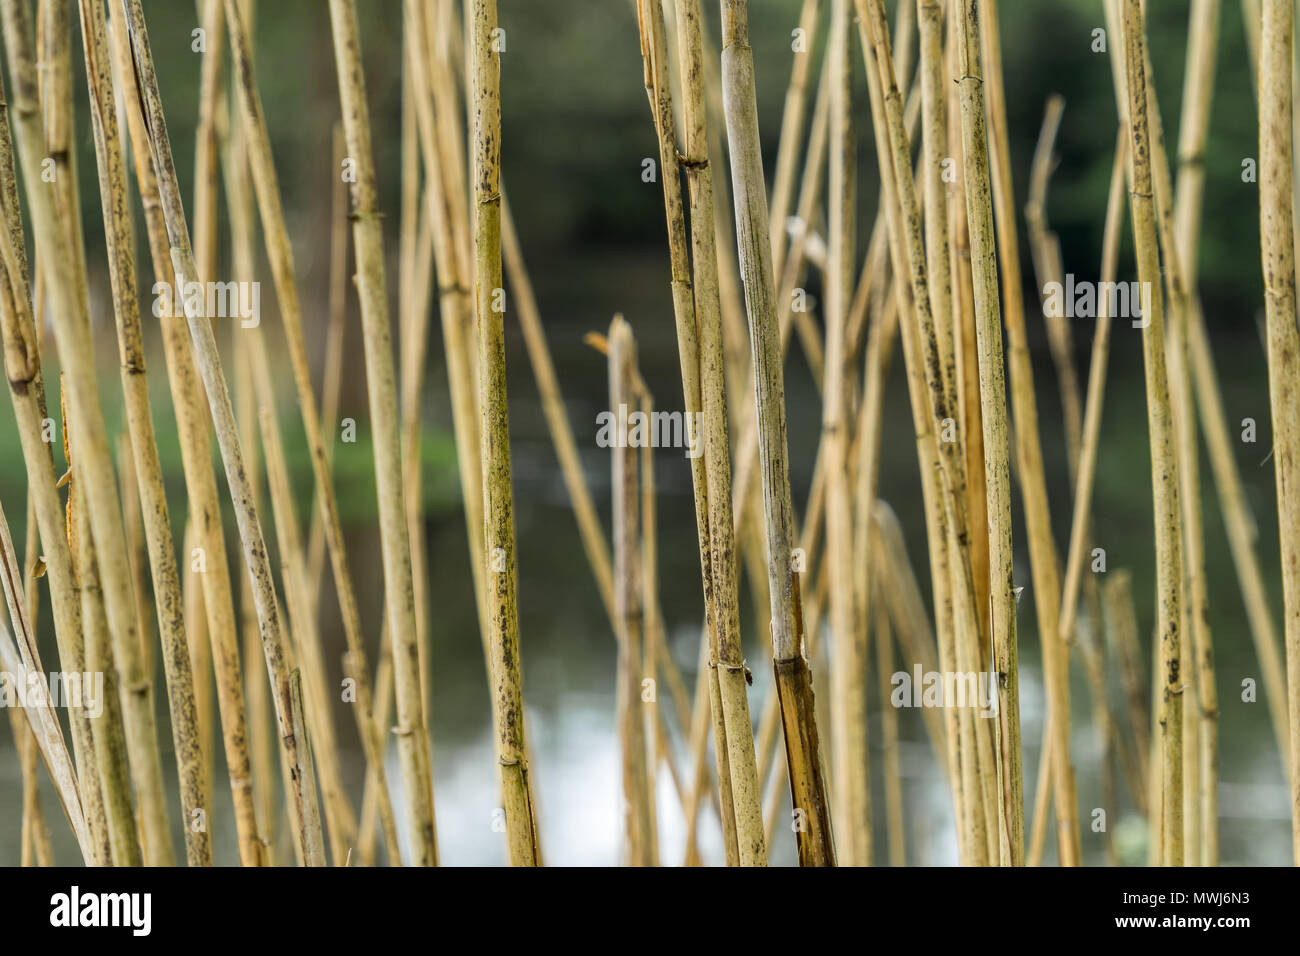 Abstract image with low depth of field of reed stalks at the edge of a stream, background - Stock Image